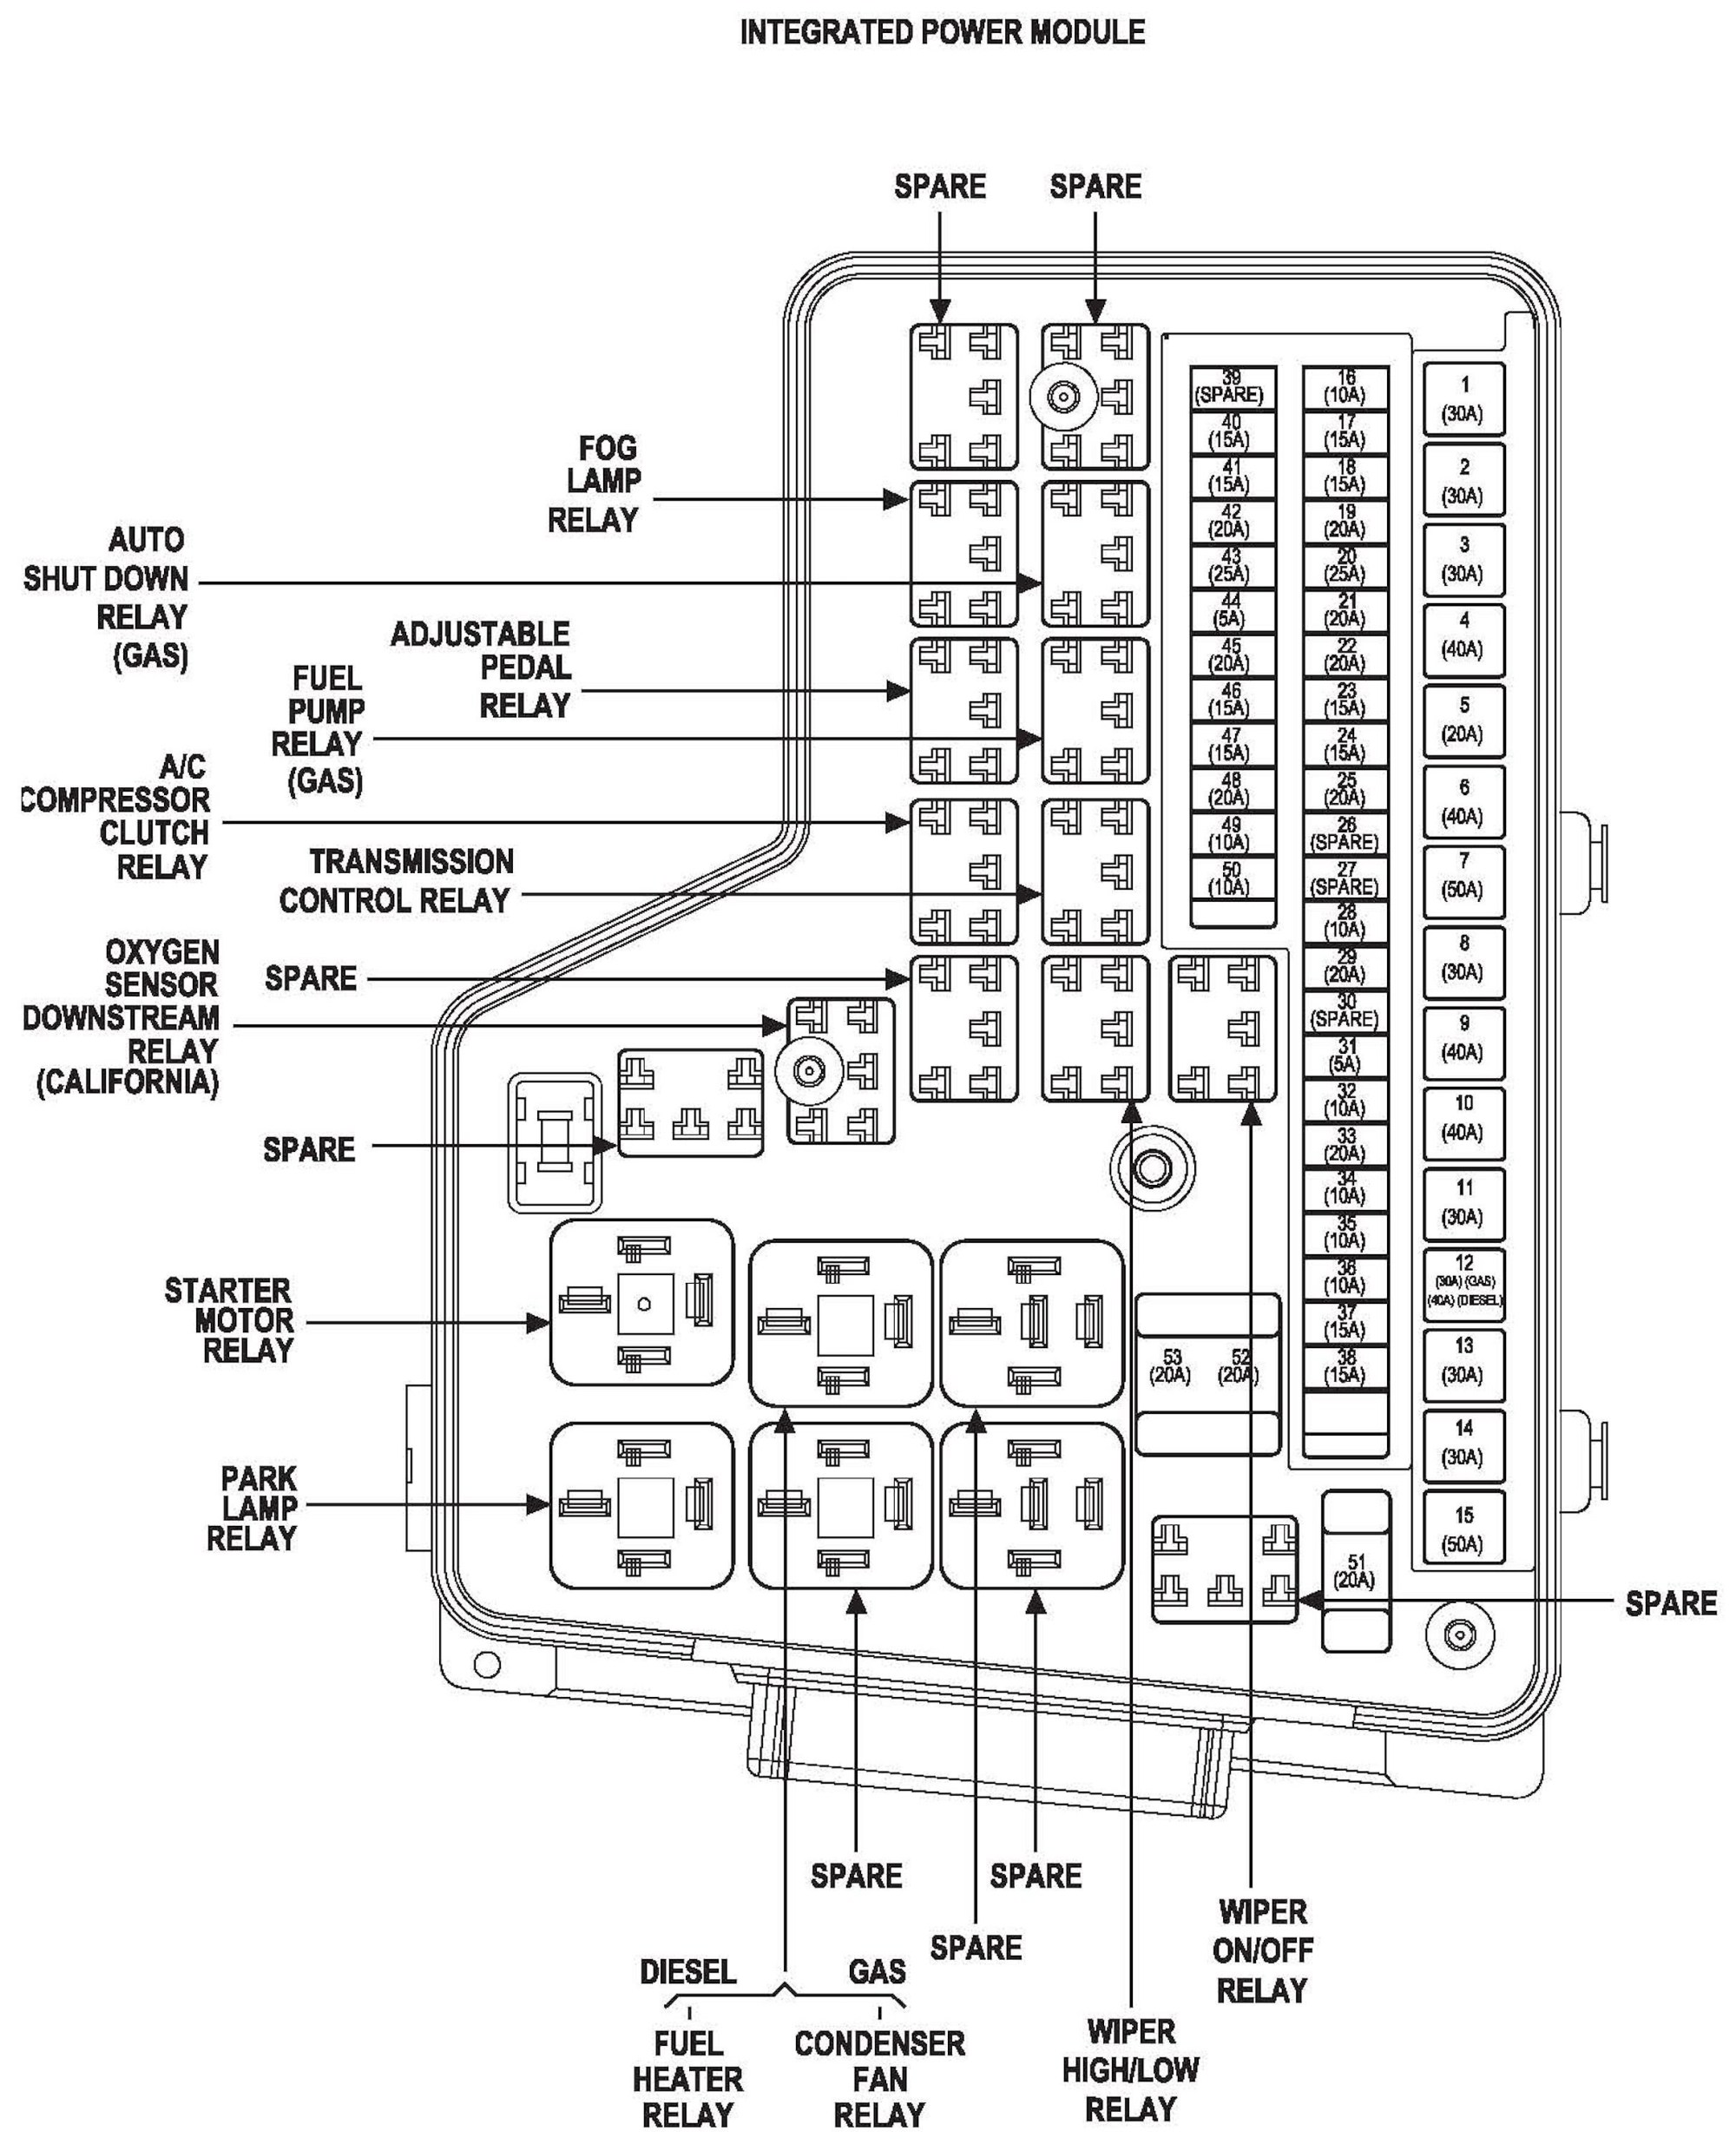 hight resolution of 2004 dodge ram fuse box diagram wiring diagram blog 2004 dodge ram fuse box diagram 2004 dodge ram fuse box diagram